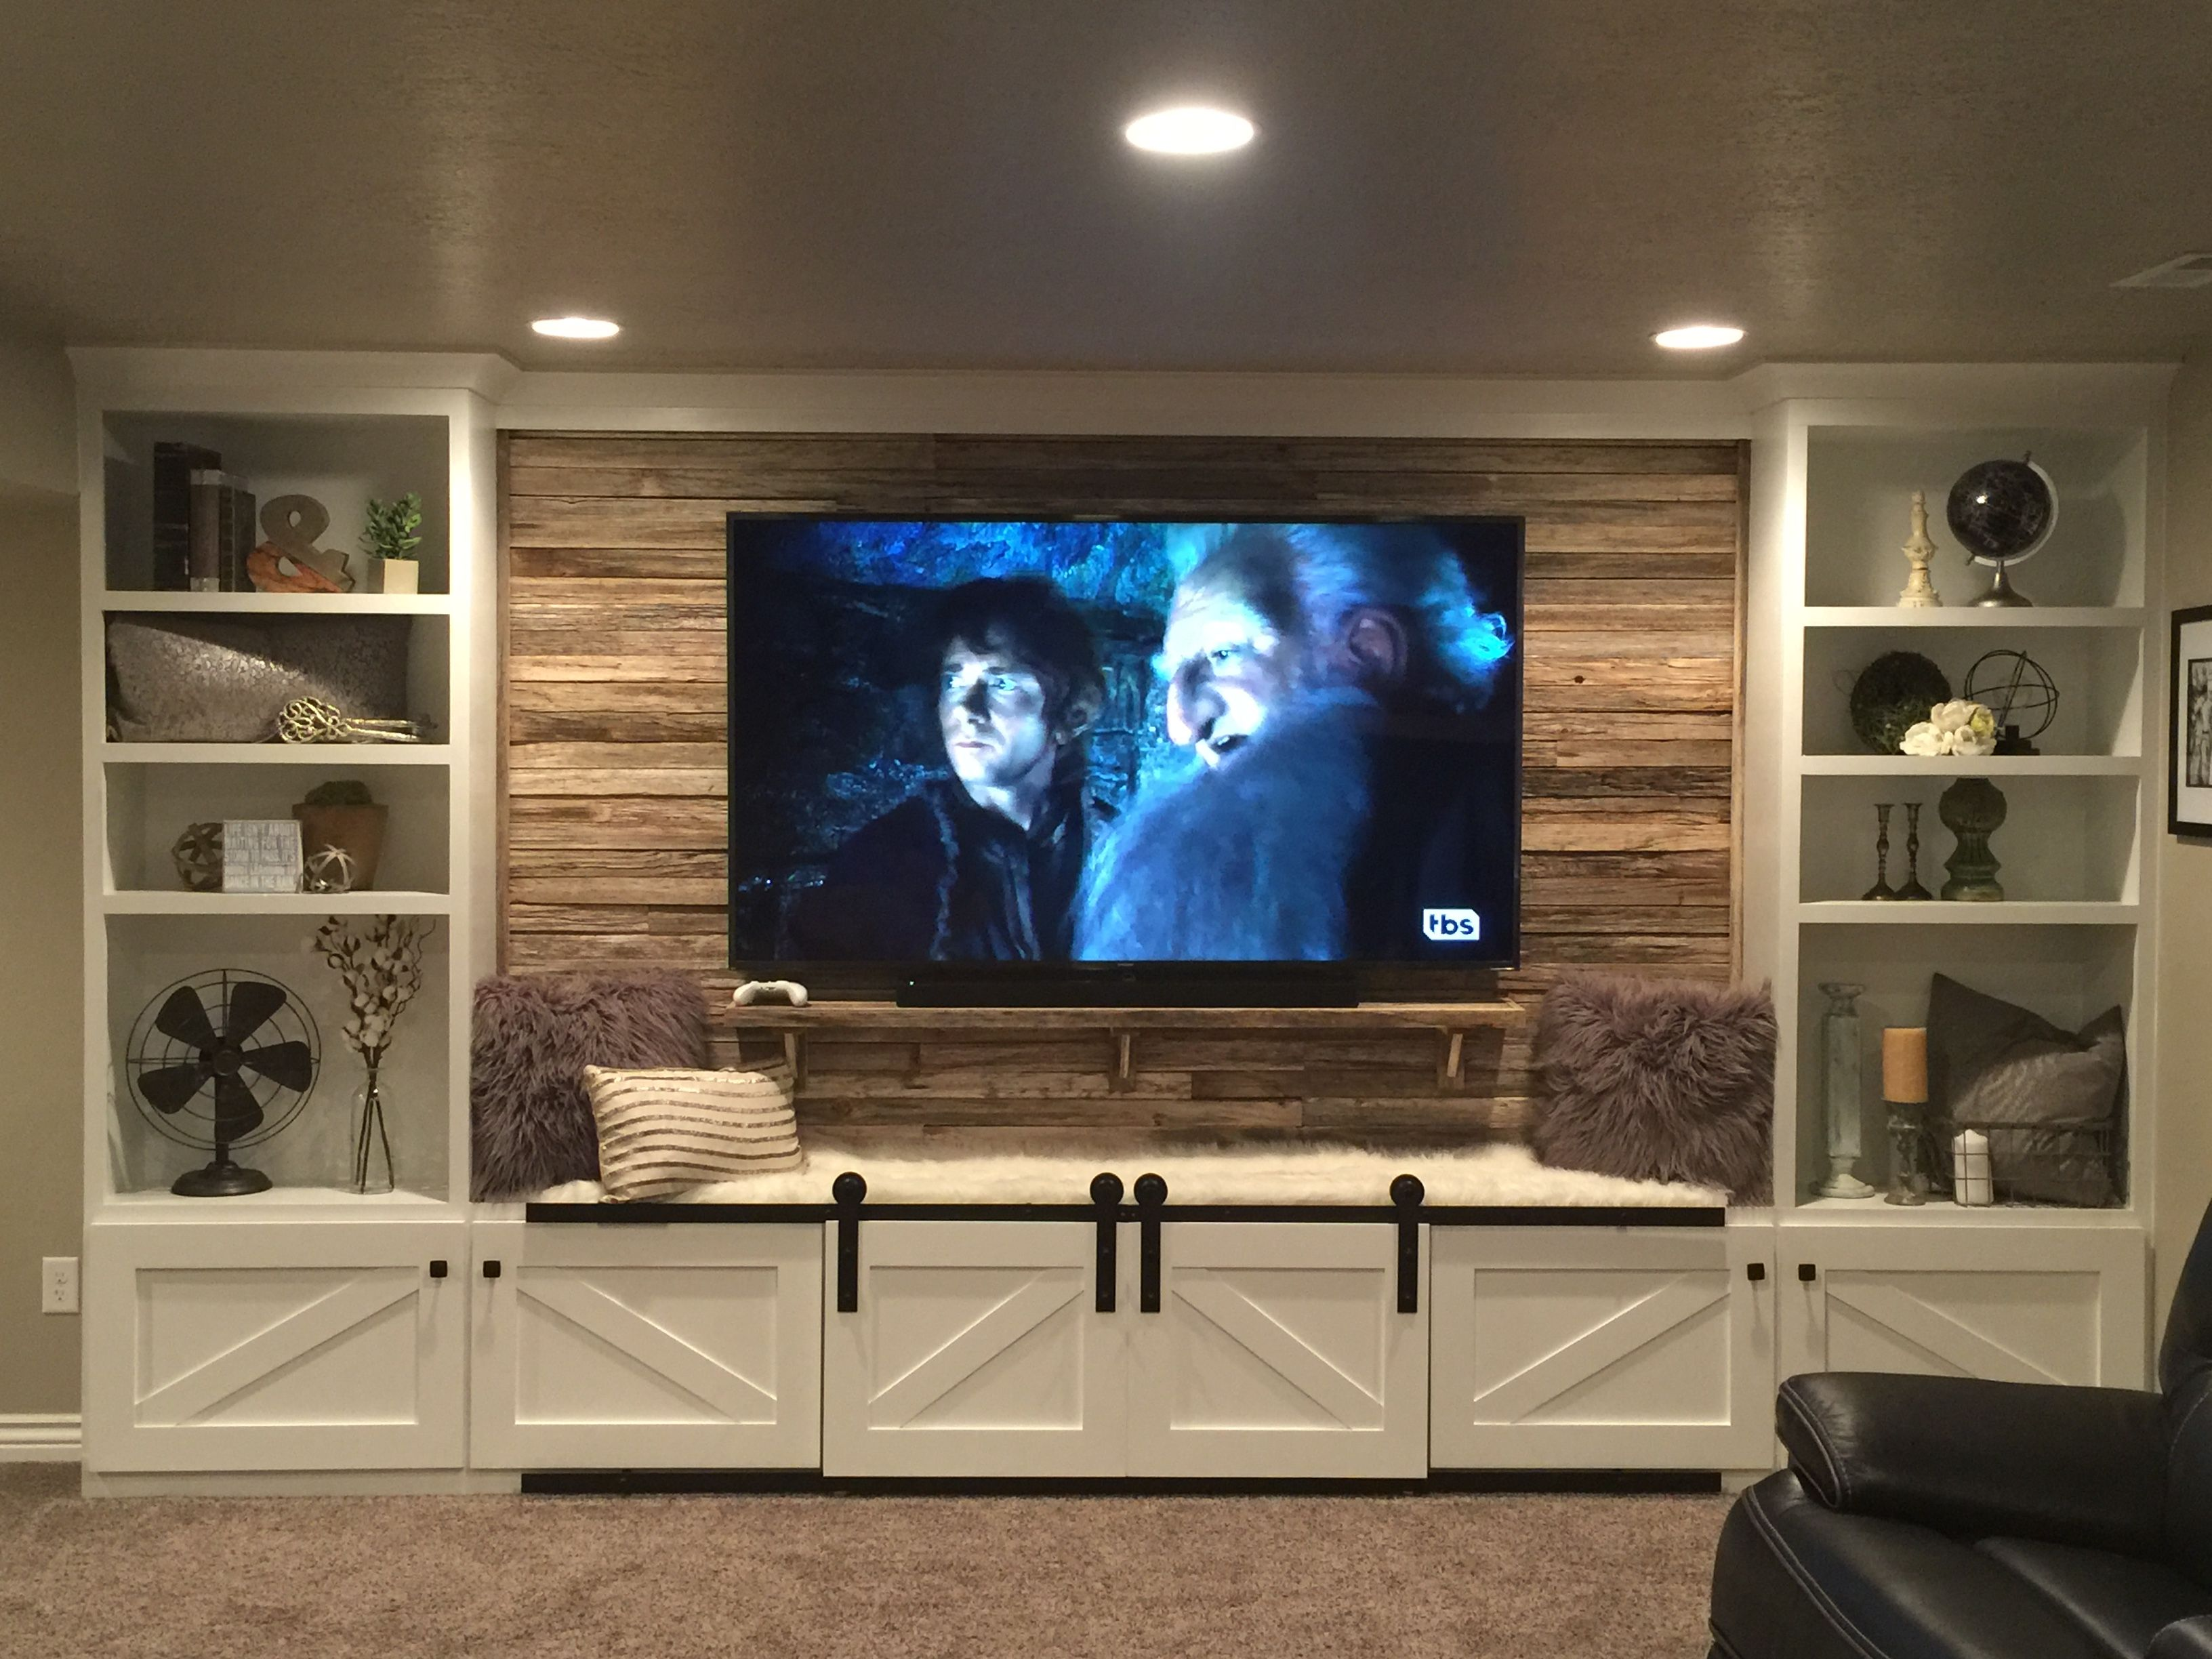 17 DIY Entertainment Center Ideas and Designs For Your New Home ...